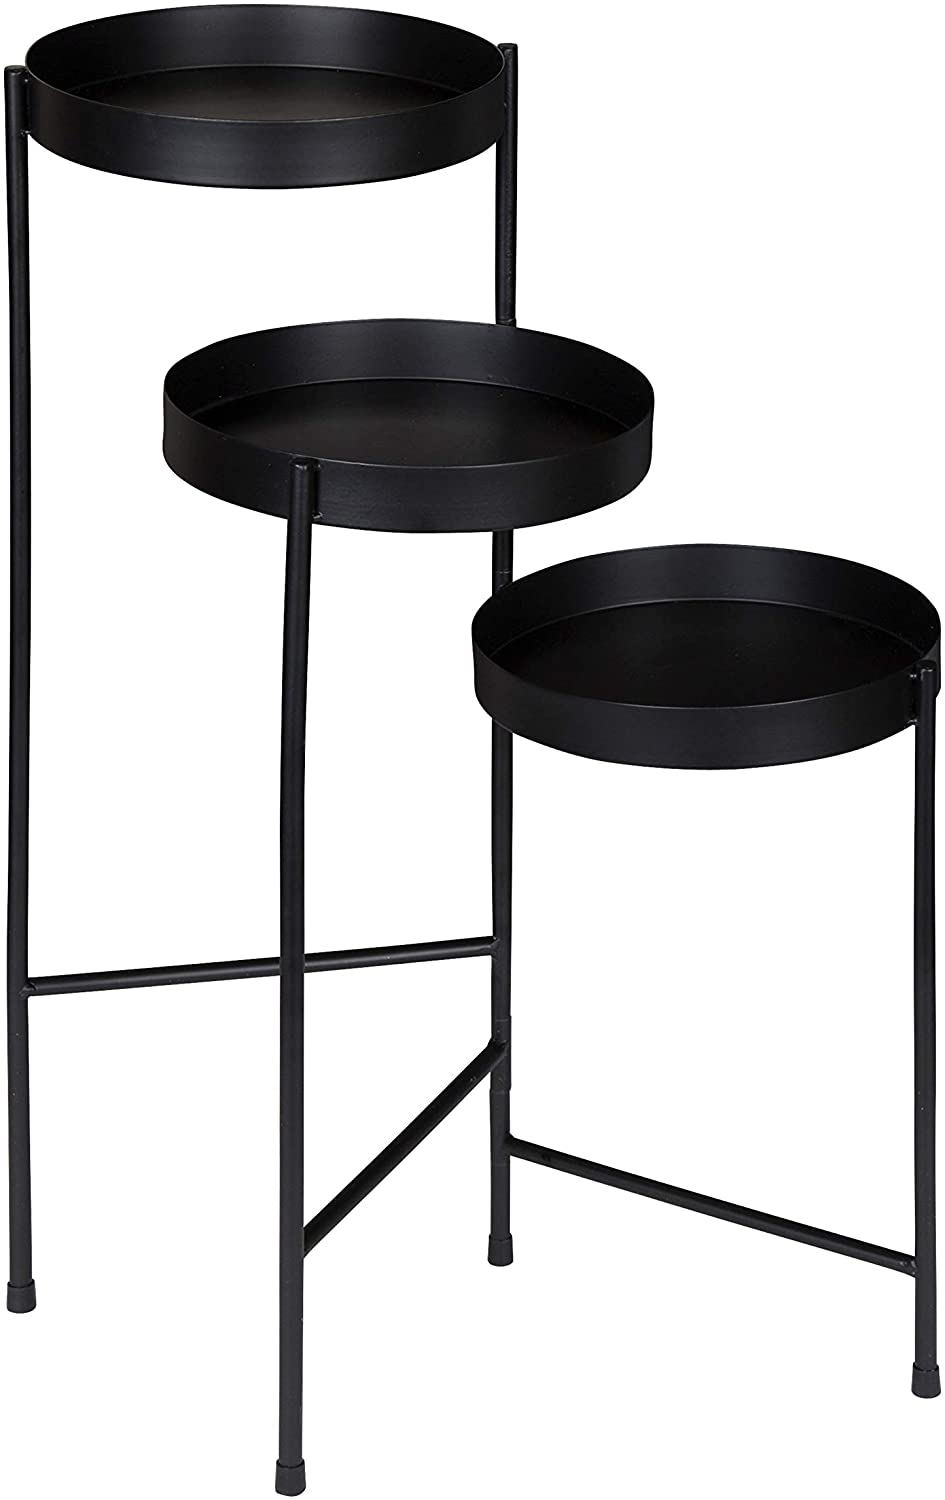 Kate And Laurel Finn Tri Level Metal Plant Stand Render